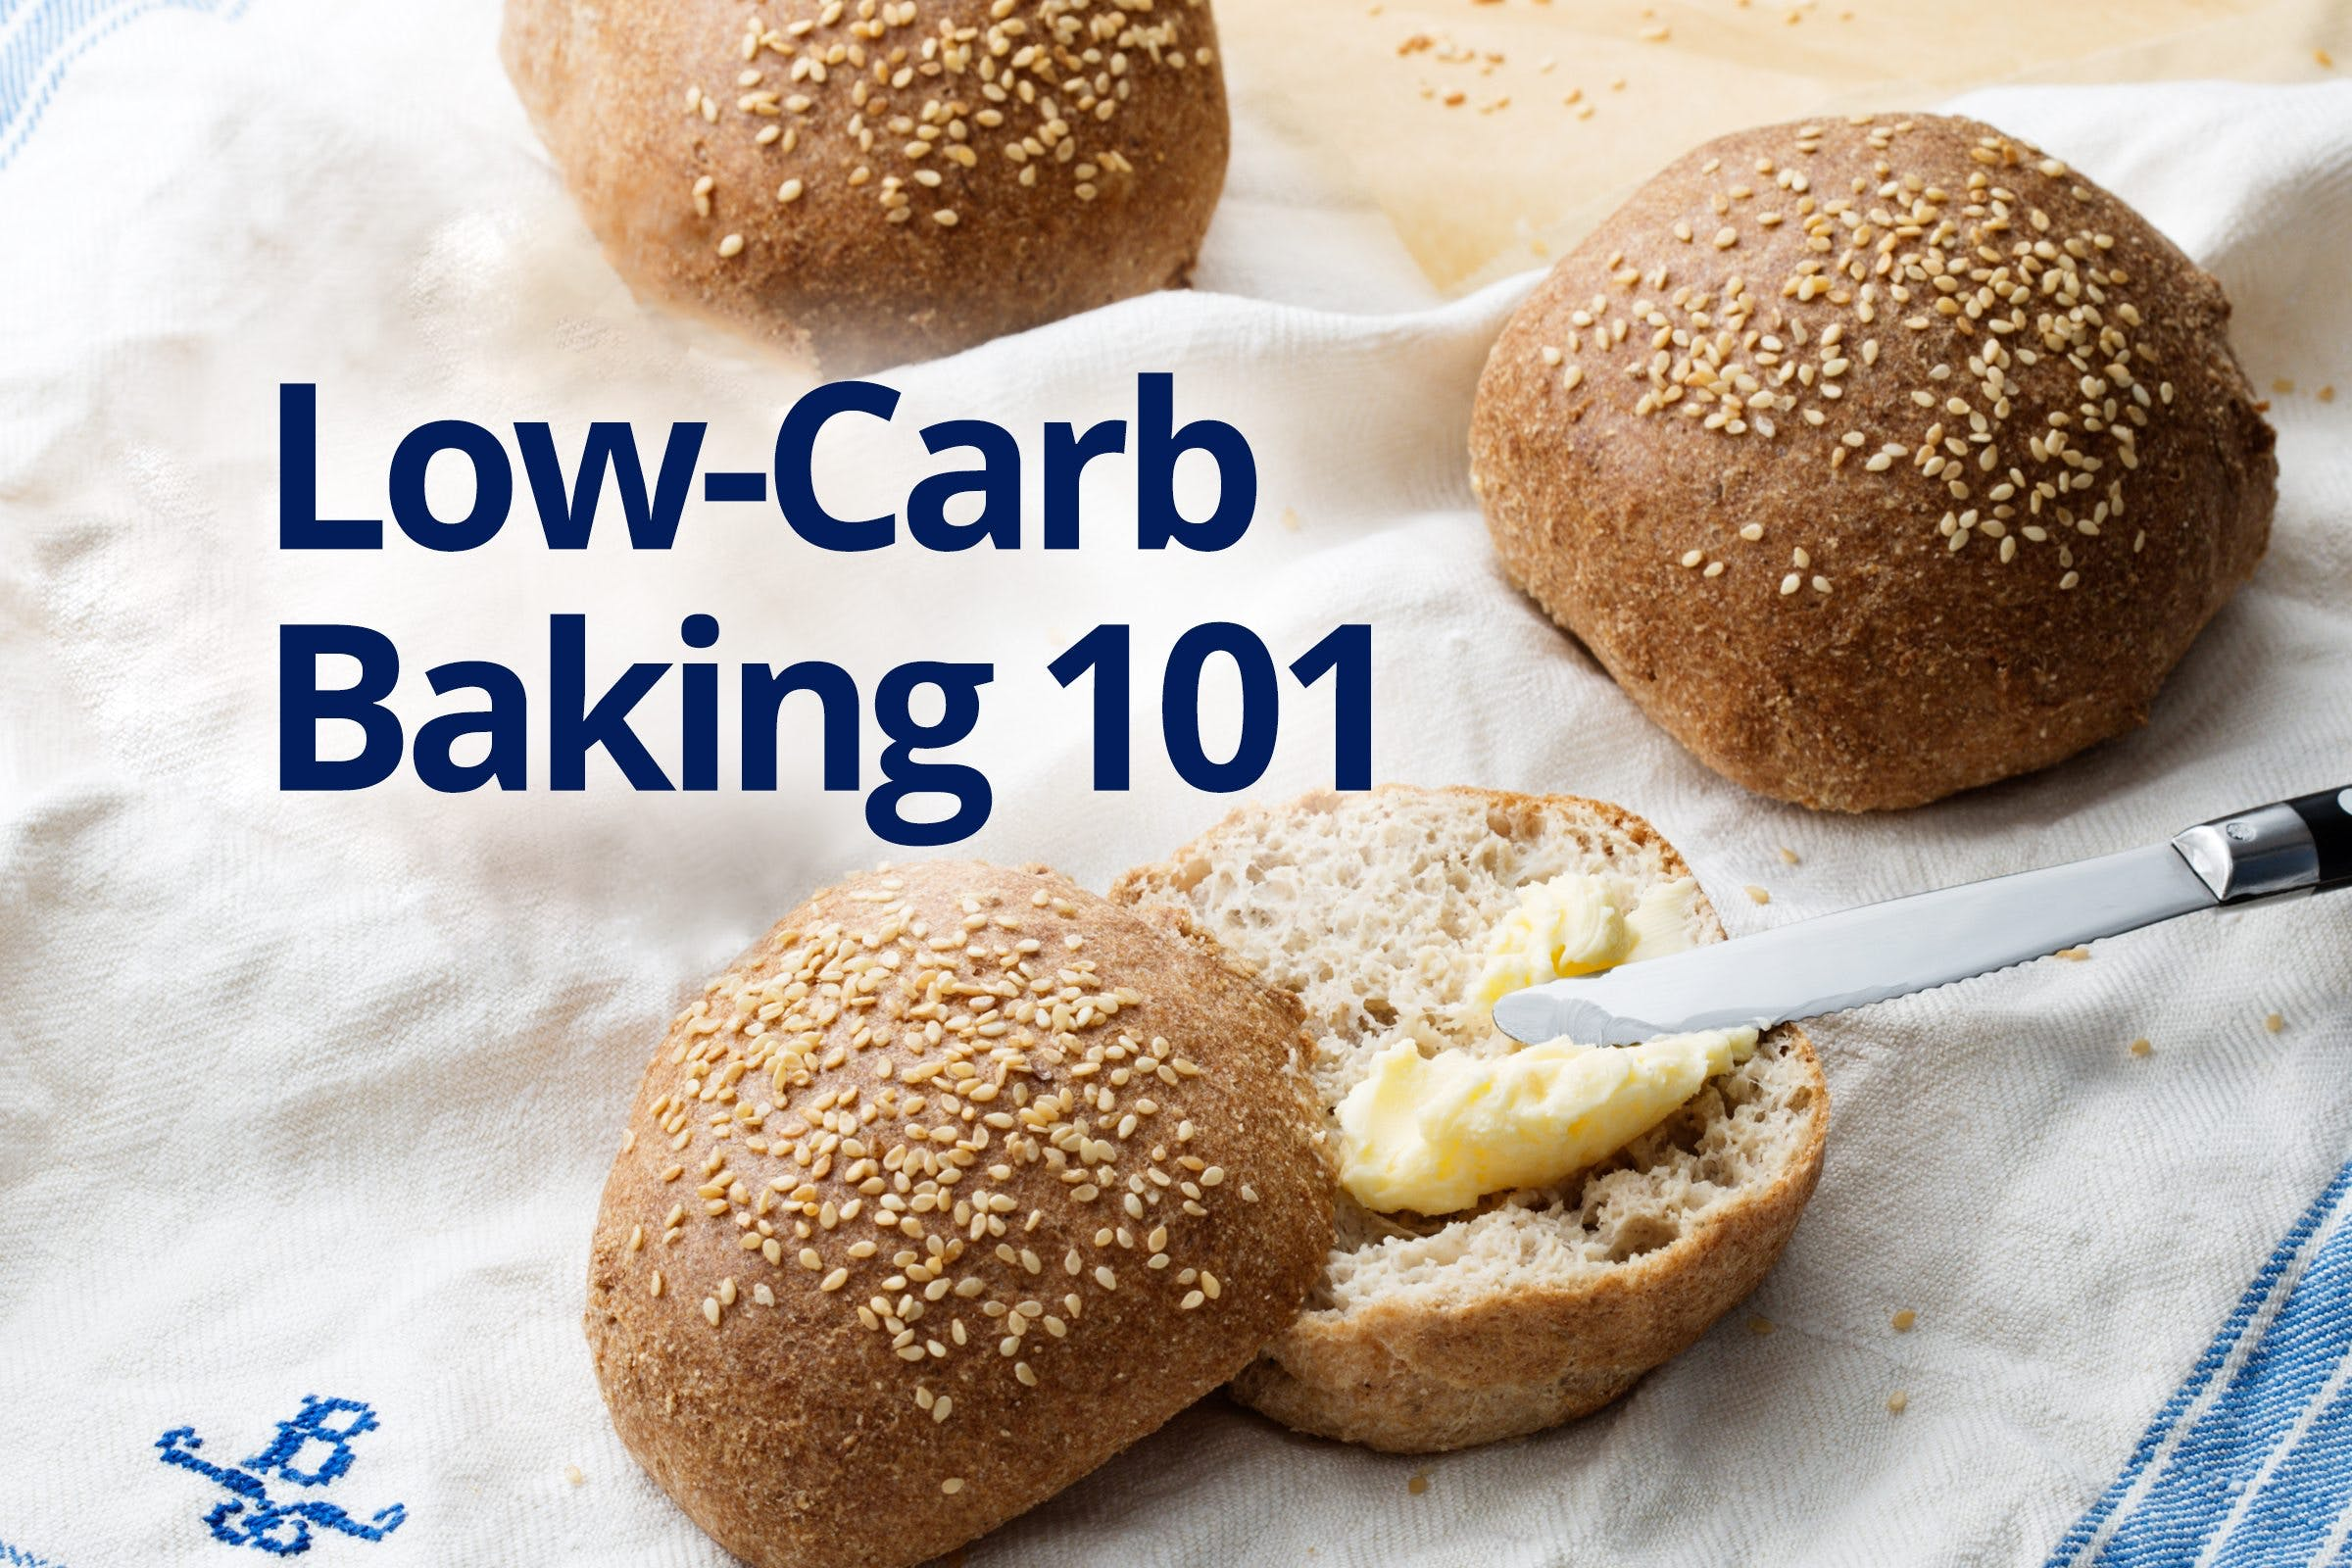 Low-carb baking